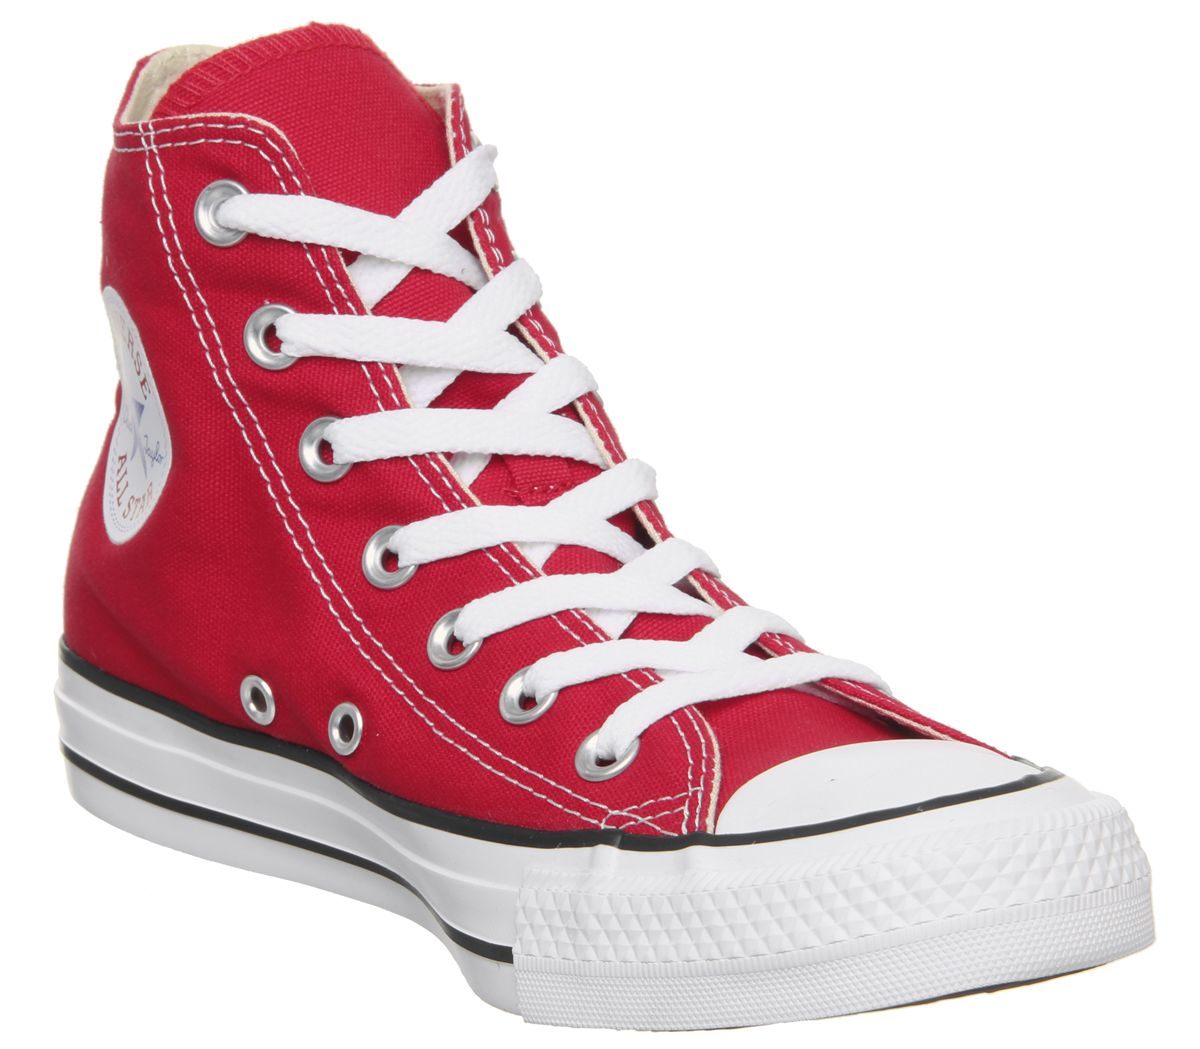 507a3b8525e0 Converse All Star Hi Red Canvas - Unisex Sports